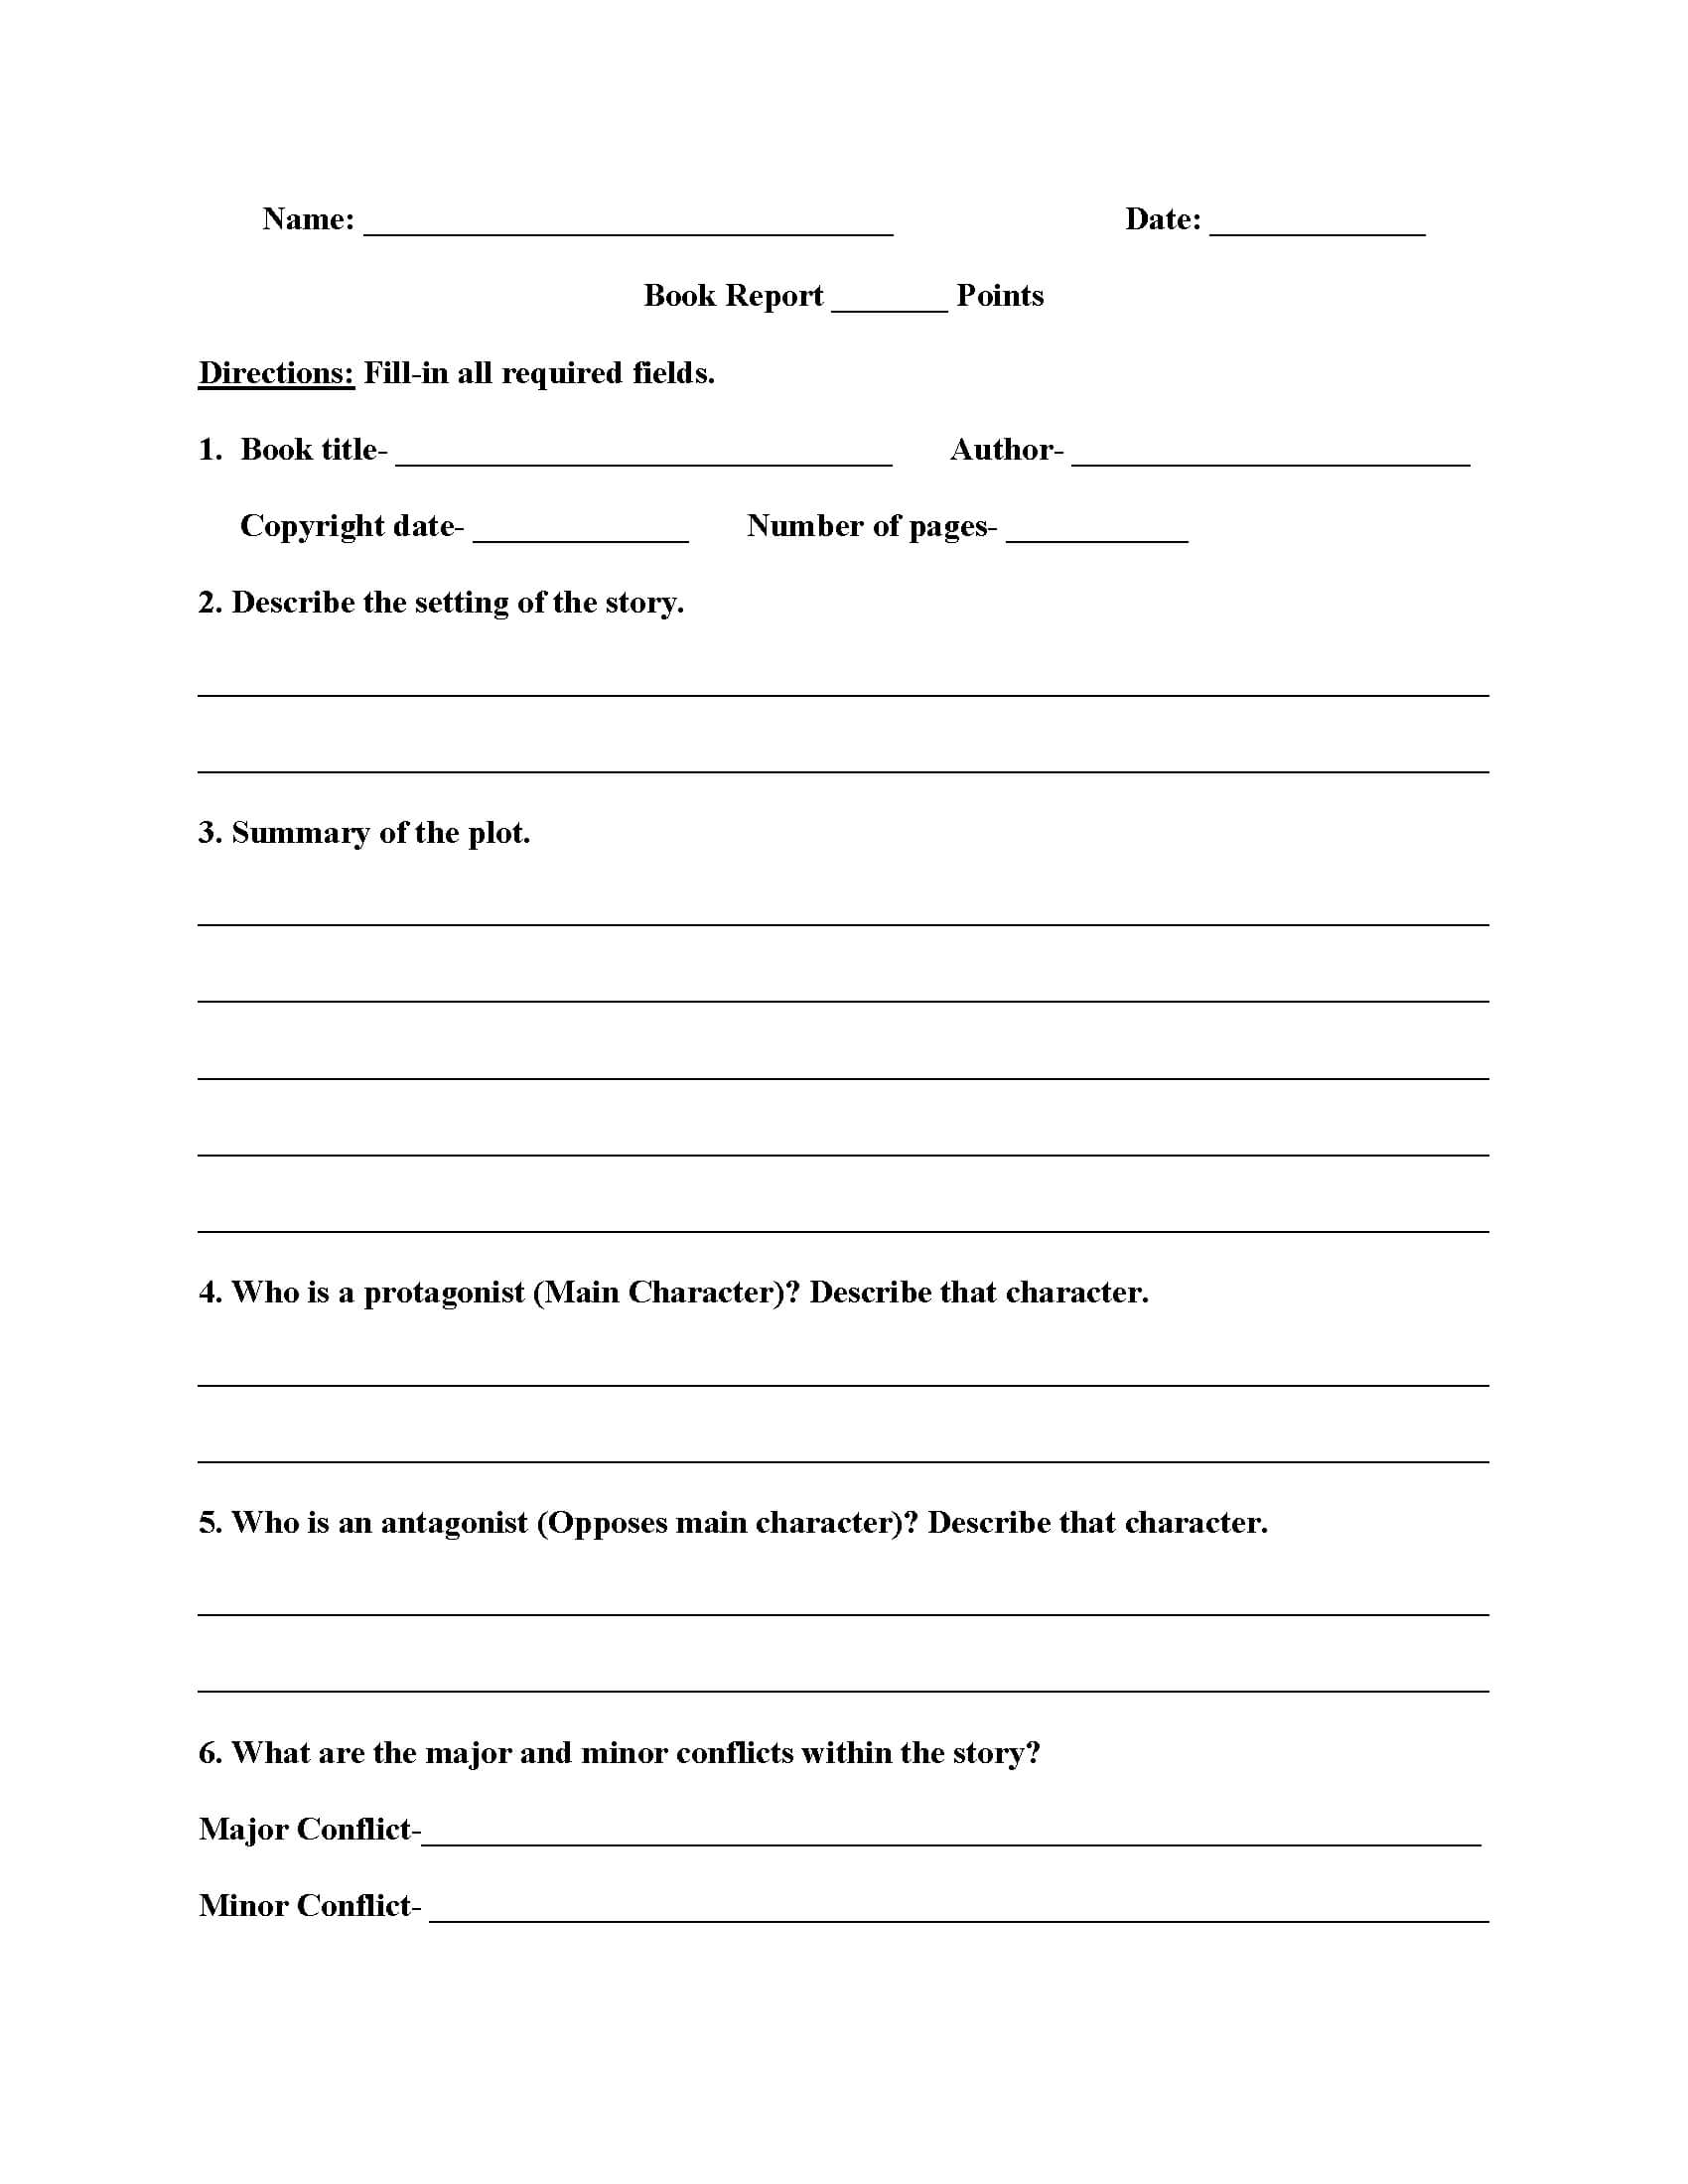 High School Book Report Worksheets | Education | High School Intended For High School Book Report Template